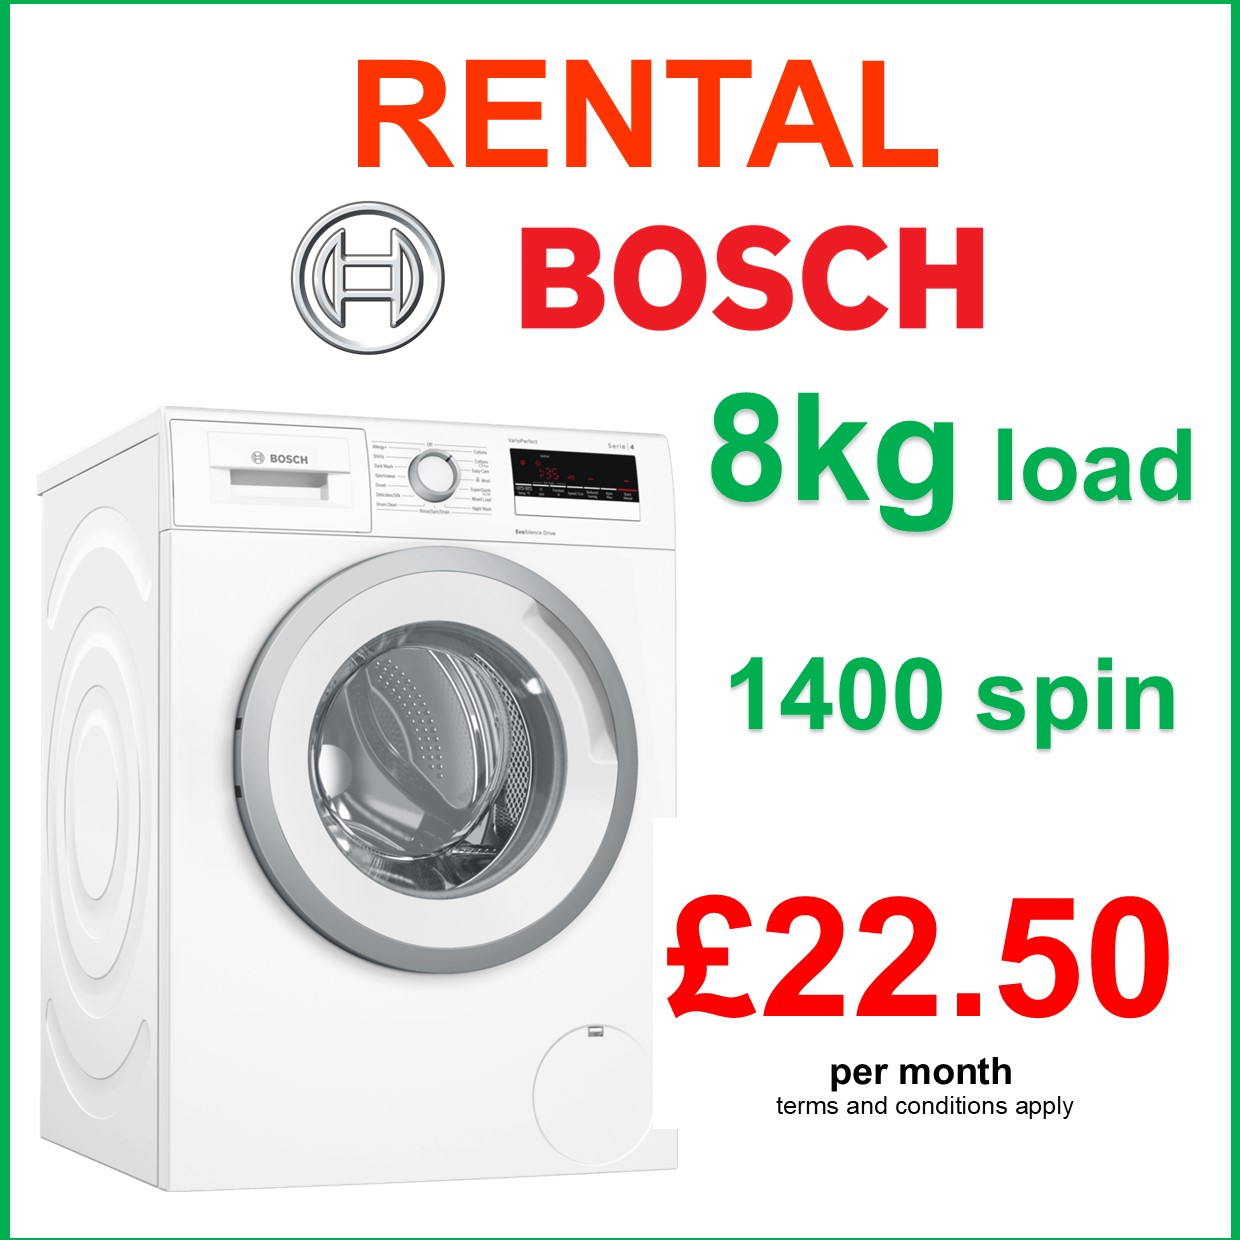 RENT THIS BOSCH  1400 SPIN 8KG LOAD WASHING MACHINE WITH 15 MINUTE FAST WASH - FREE Repairs, FAST Service, LOW Payments